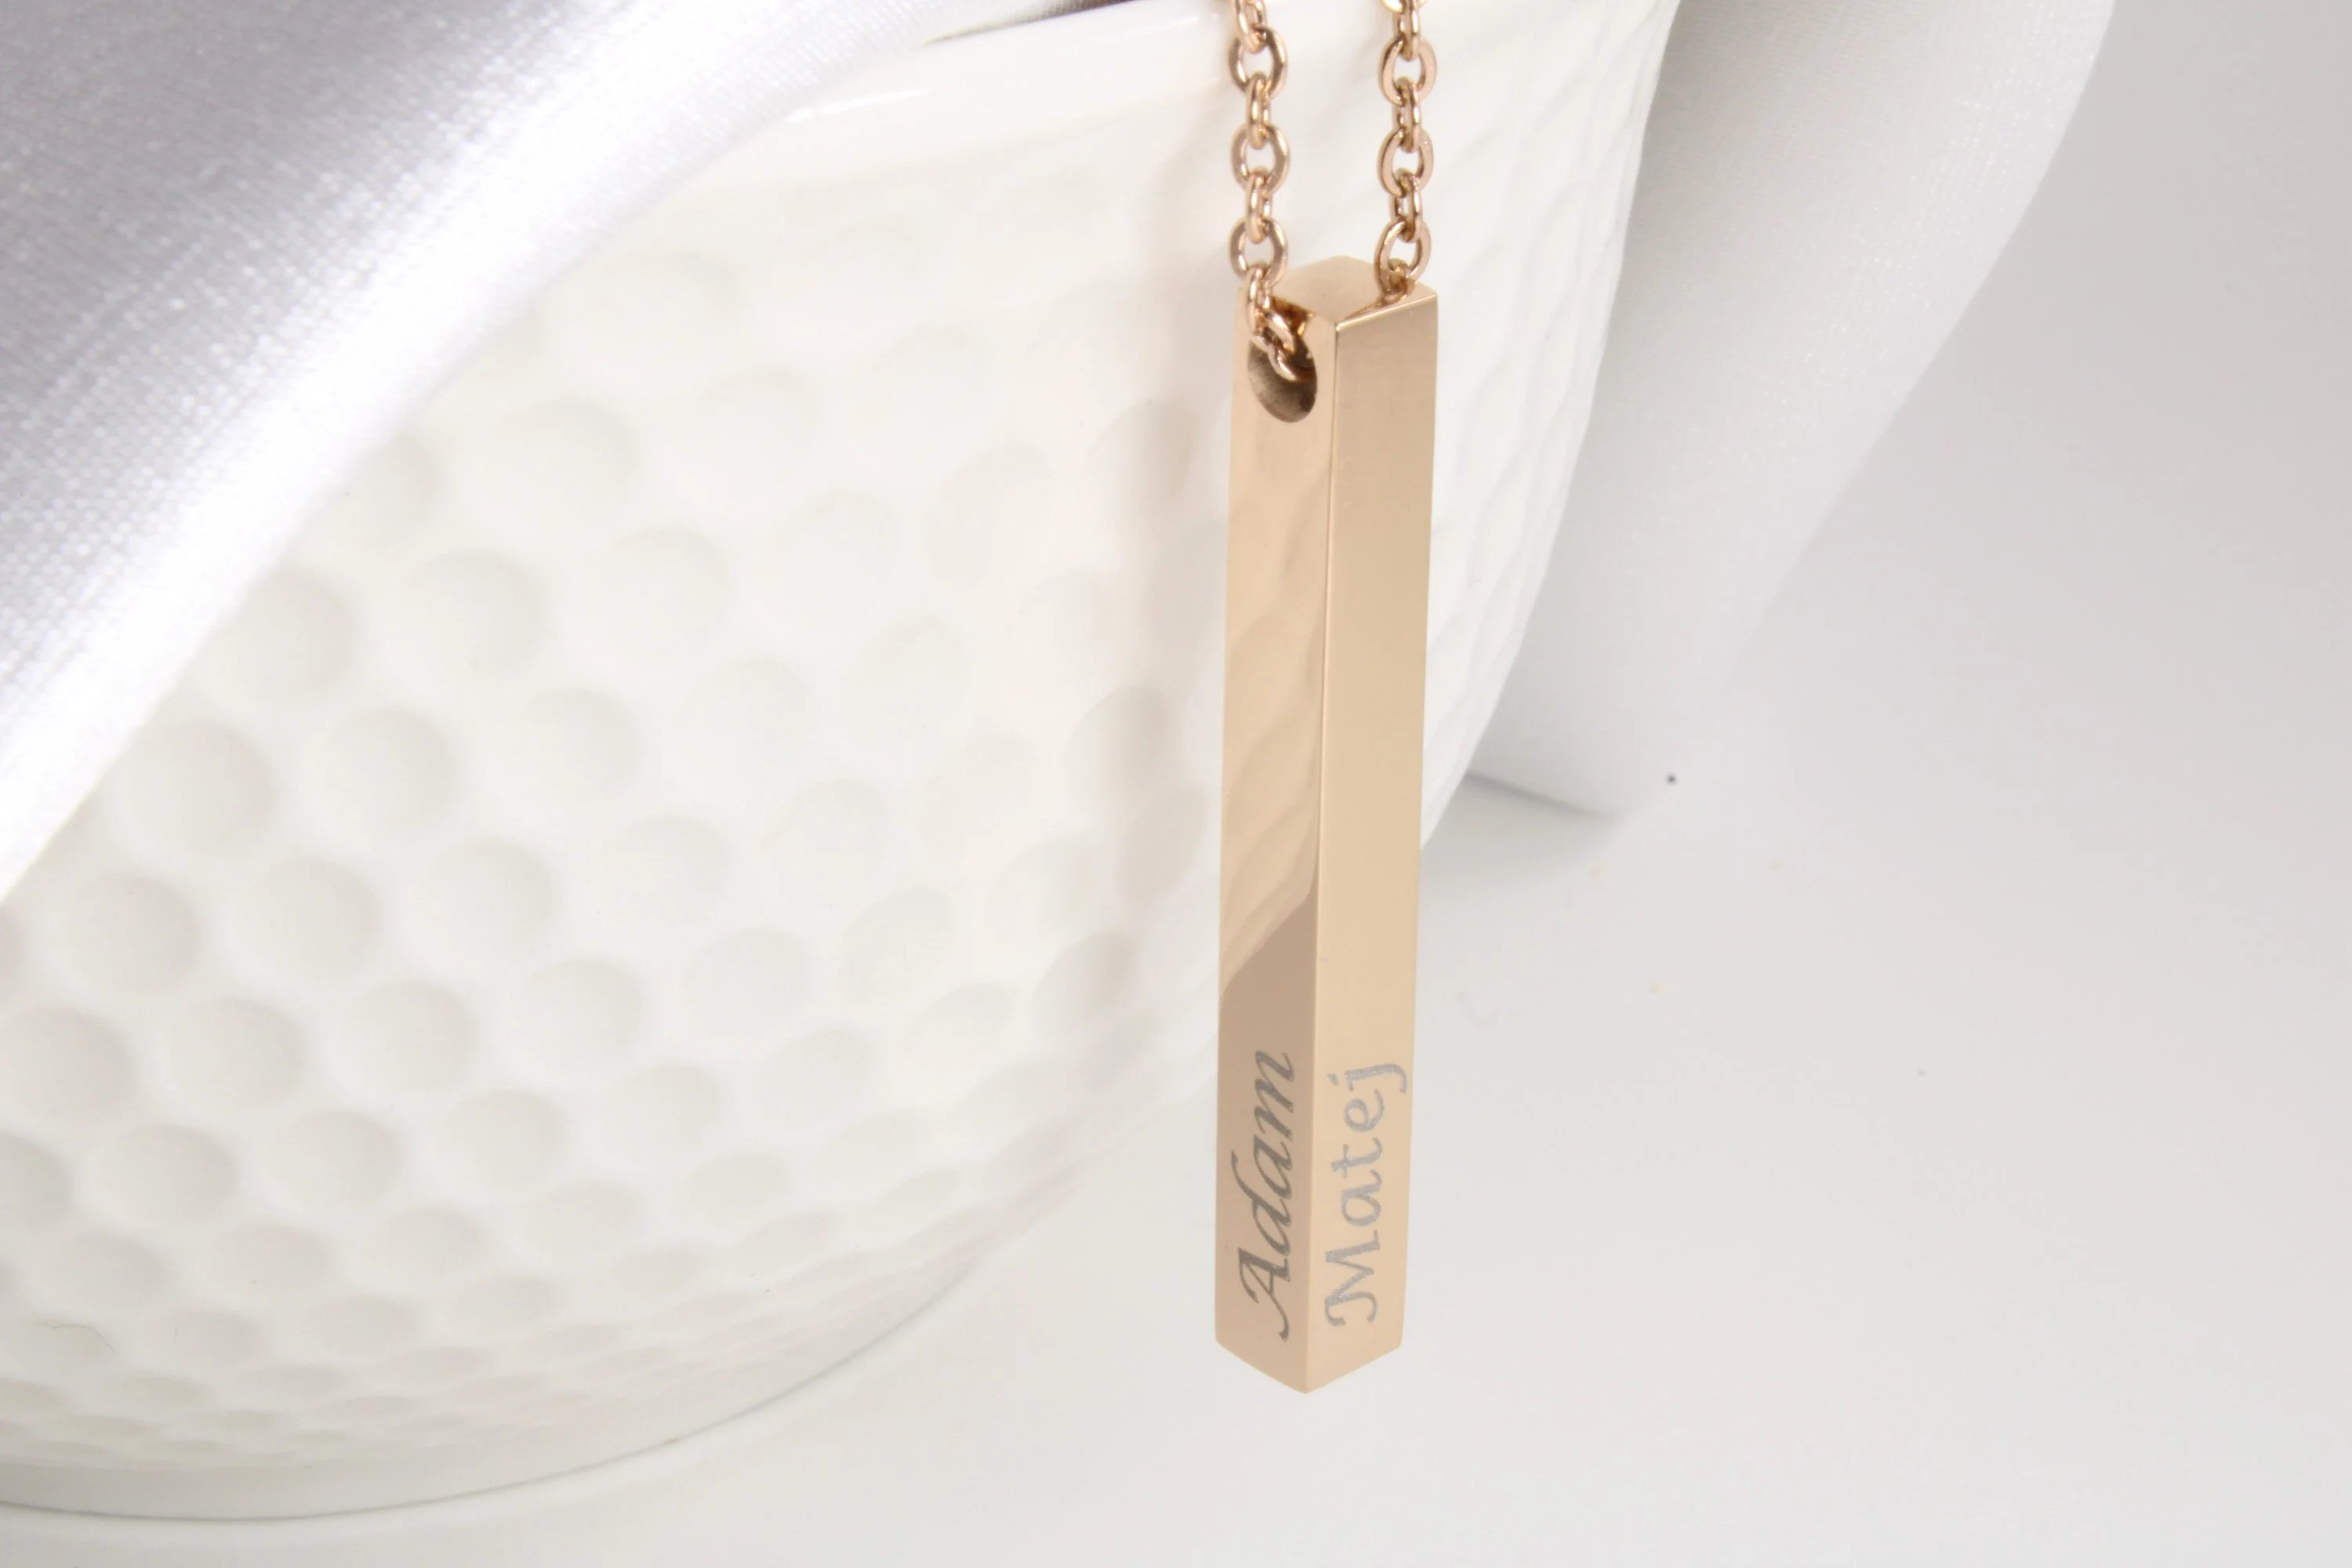 Personalized jewelry bar necklace custom laser engraved image 7